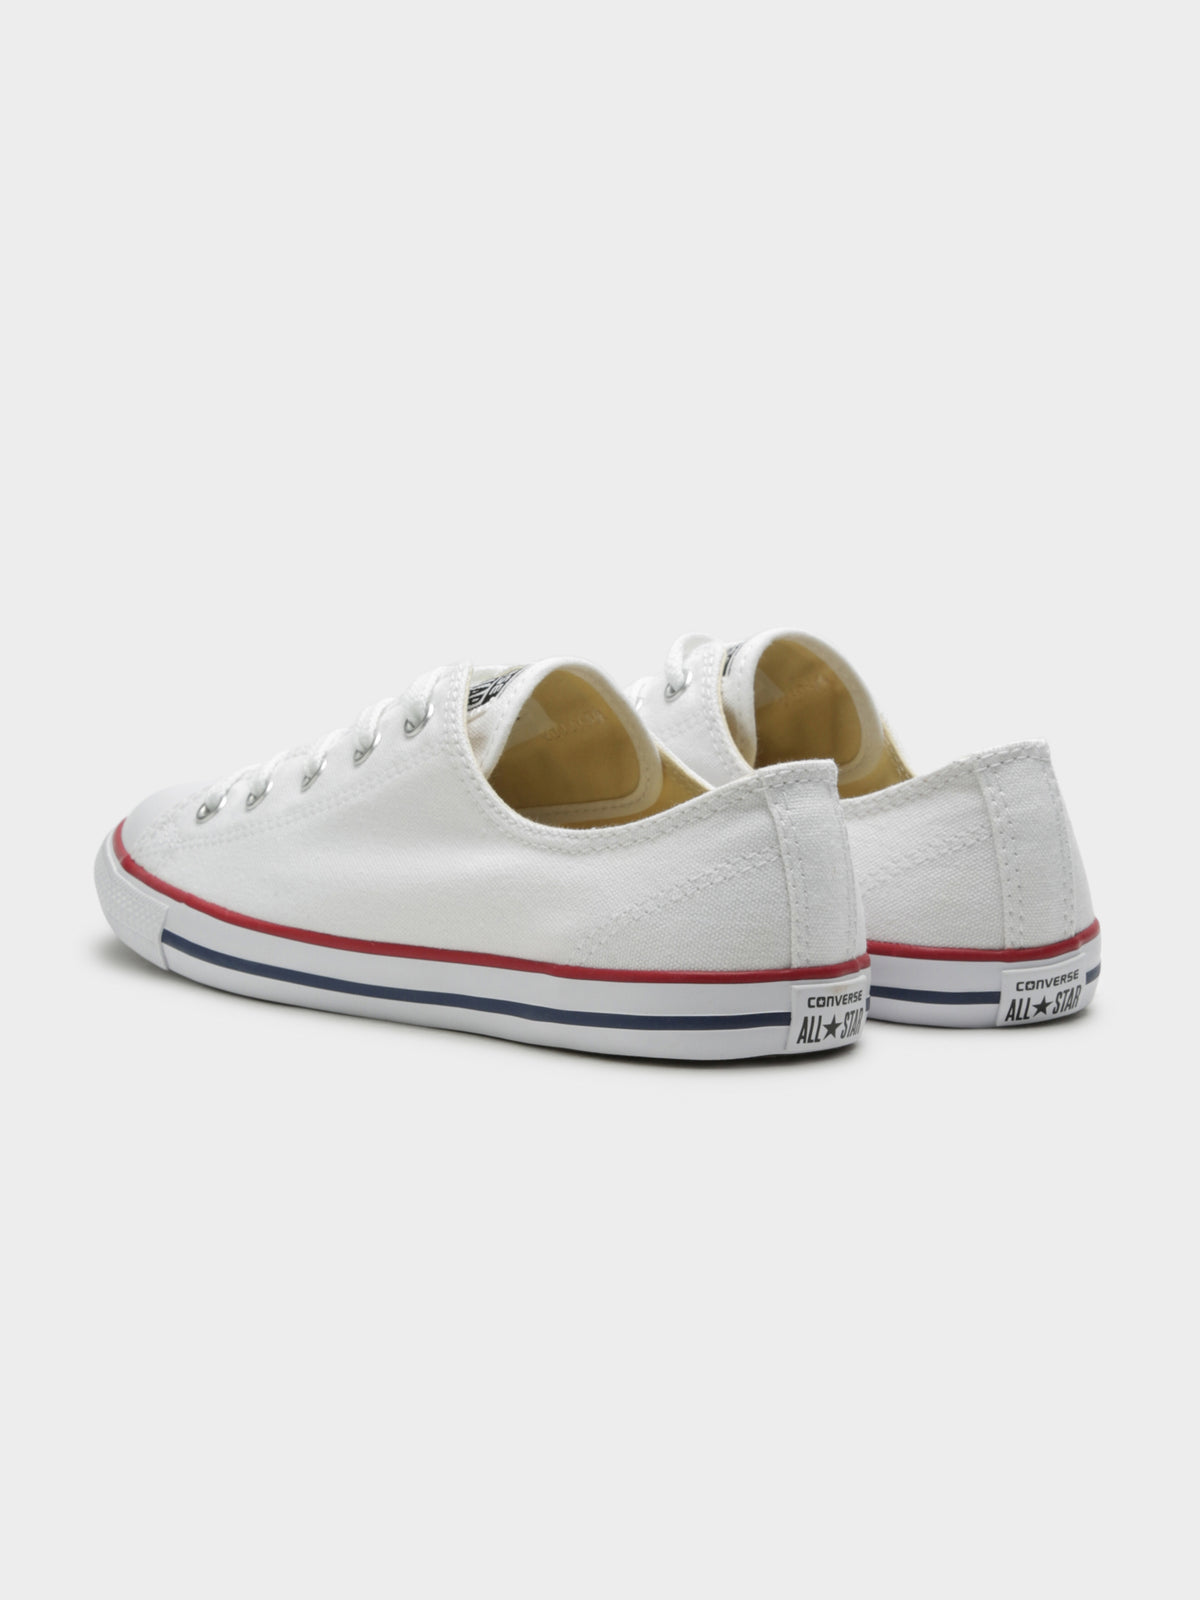 Womens Chuck Taylor Dainty Low-Top Sneakers in Optic White Canvas